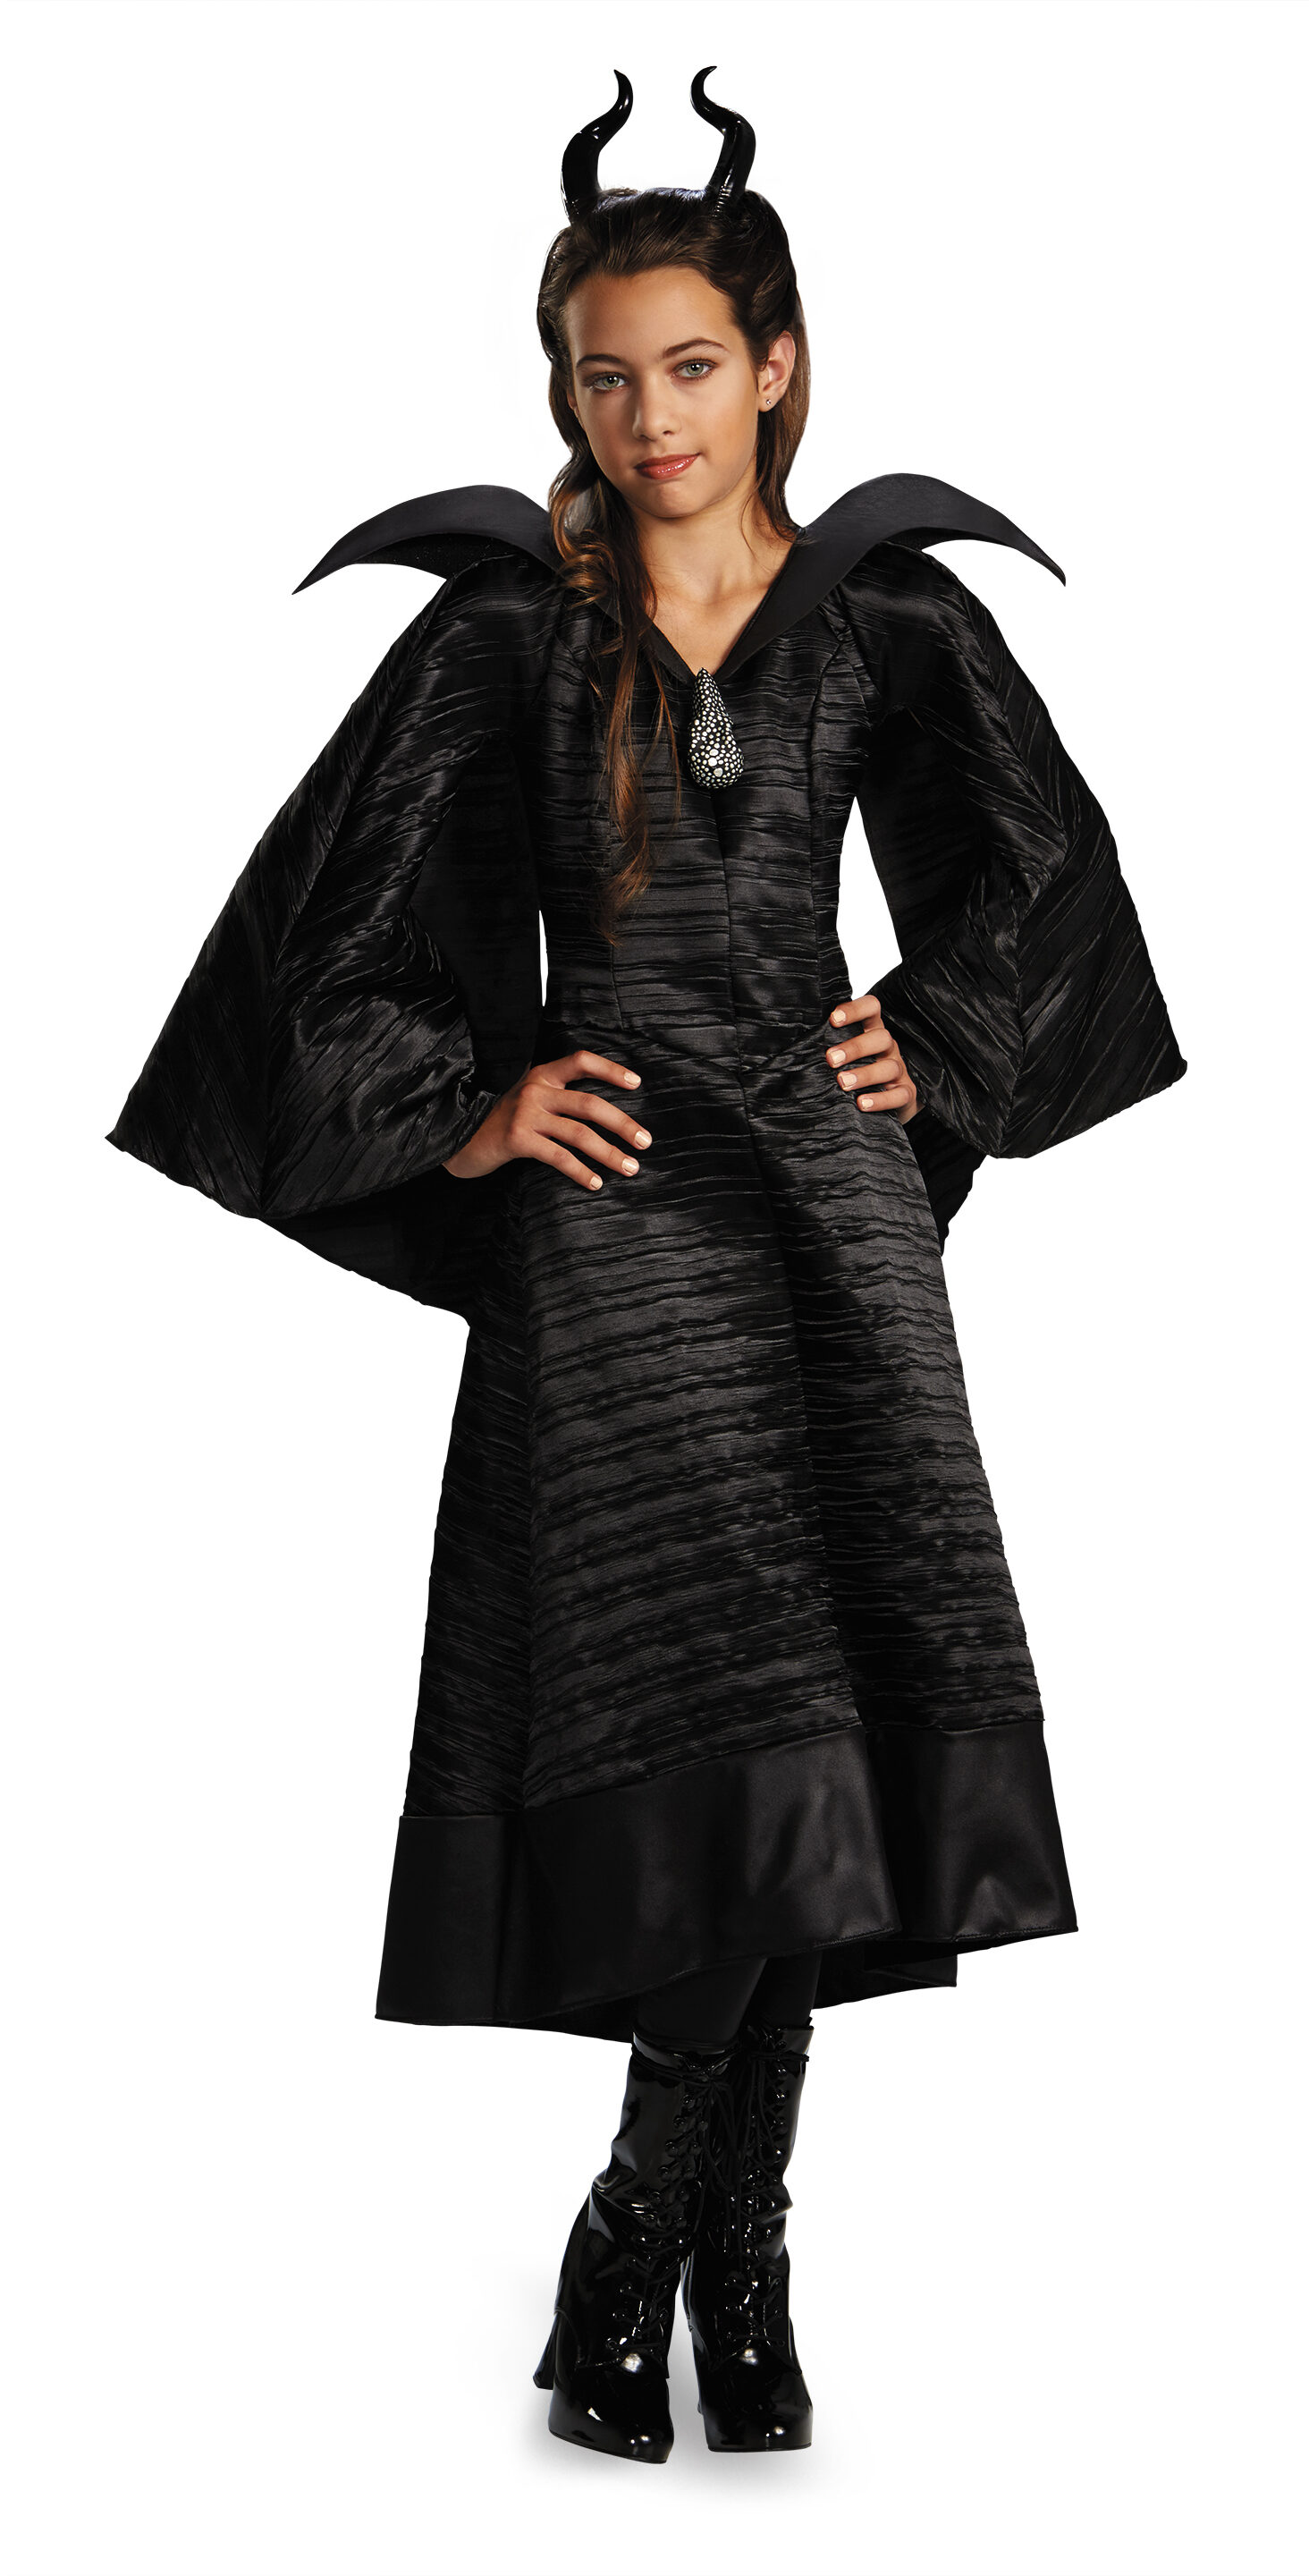 handmade costumes for sale disney maleficent black gown costume mr costumes 5803